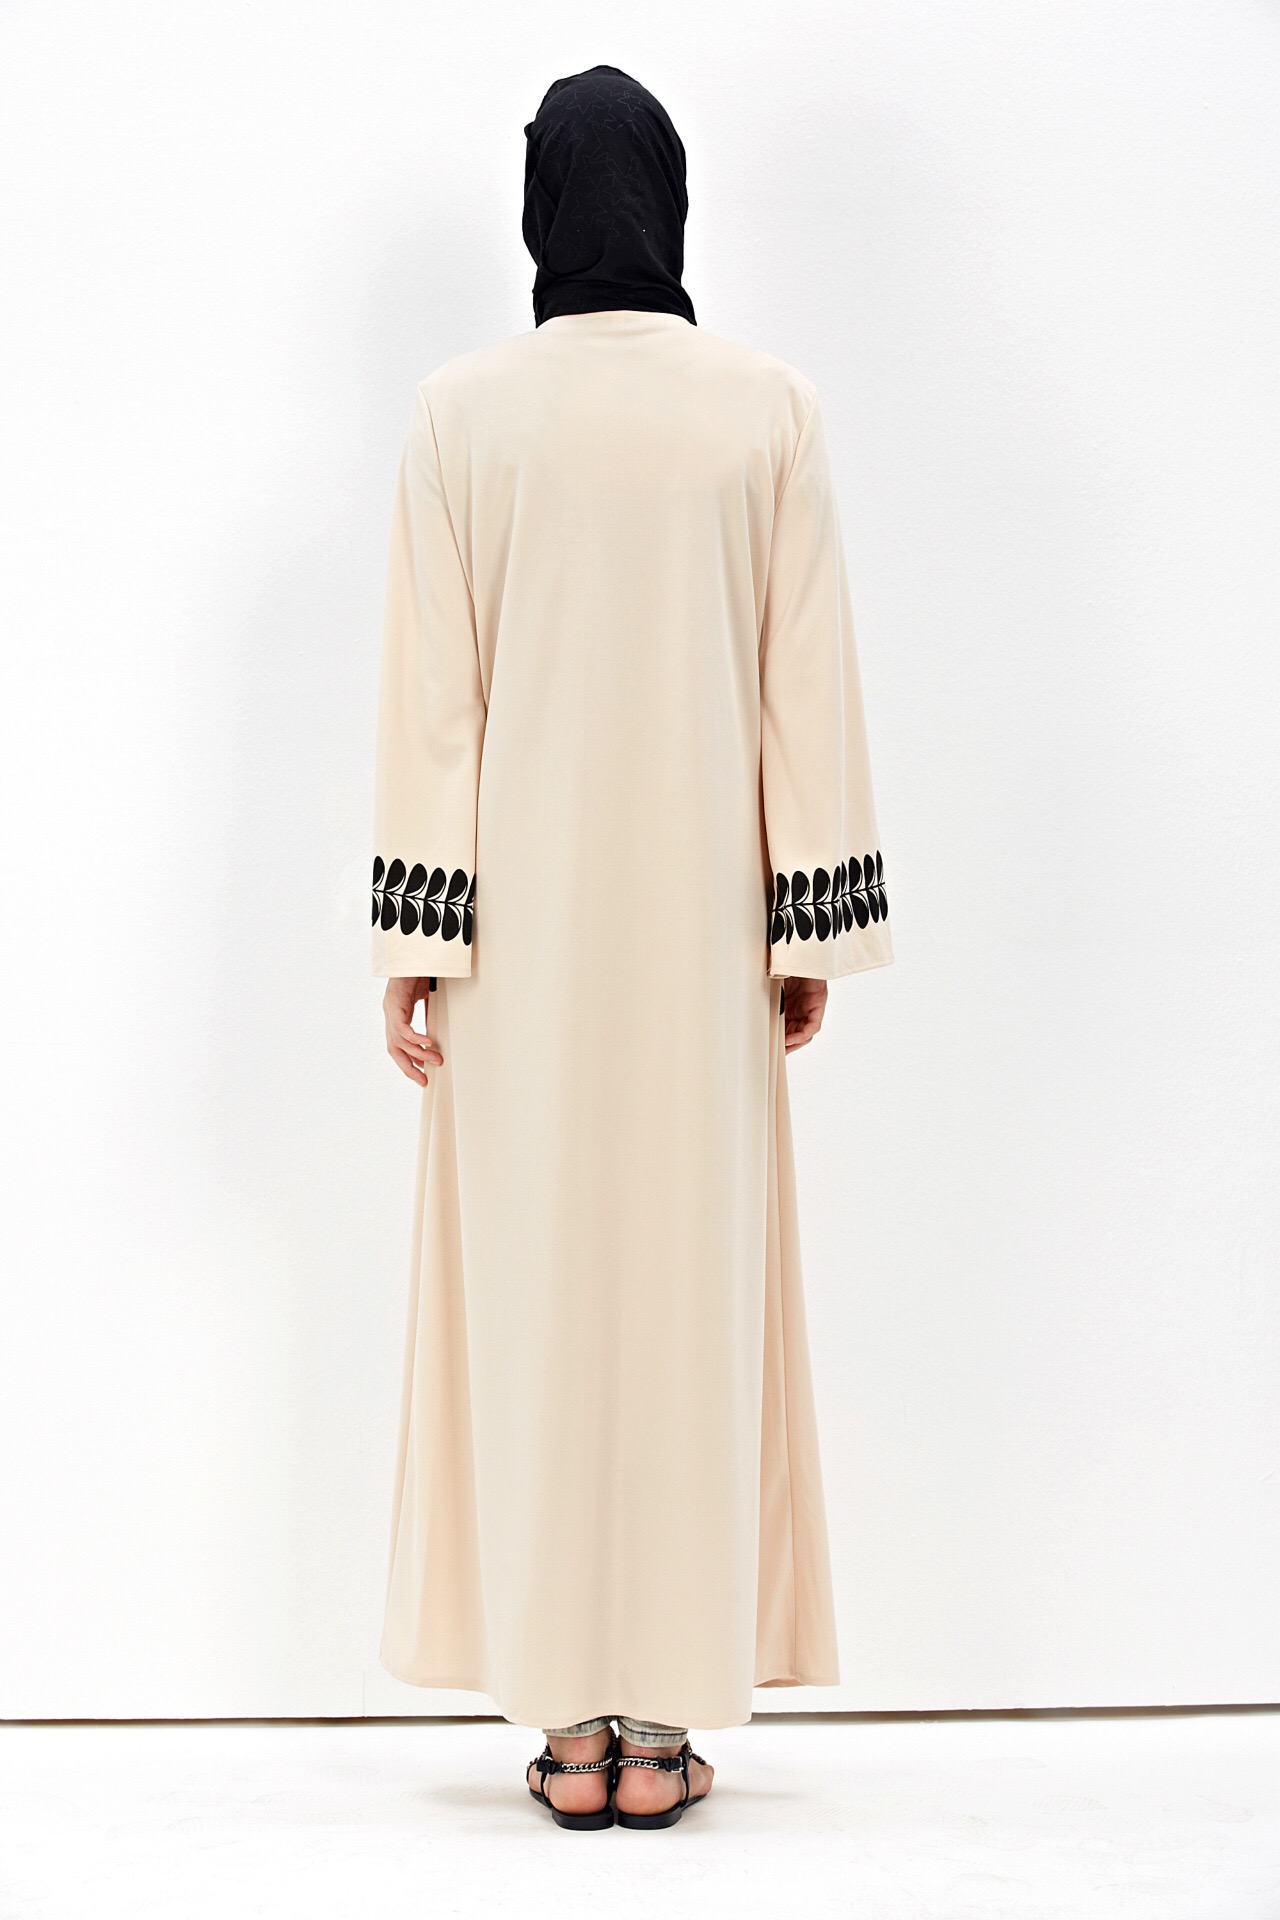 HOT Sale Muslim Dress New Fashionable Abaya Clothing Long Maxi Easy to Wear for Women Designs Hijab Gowns